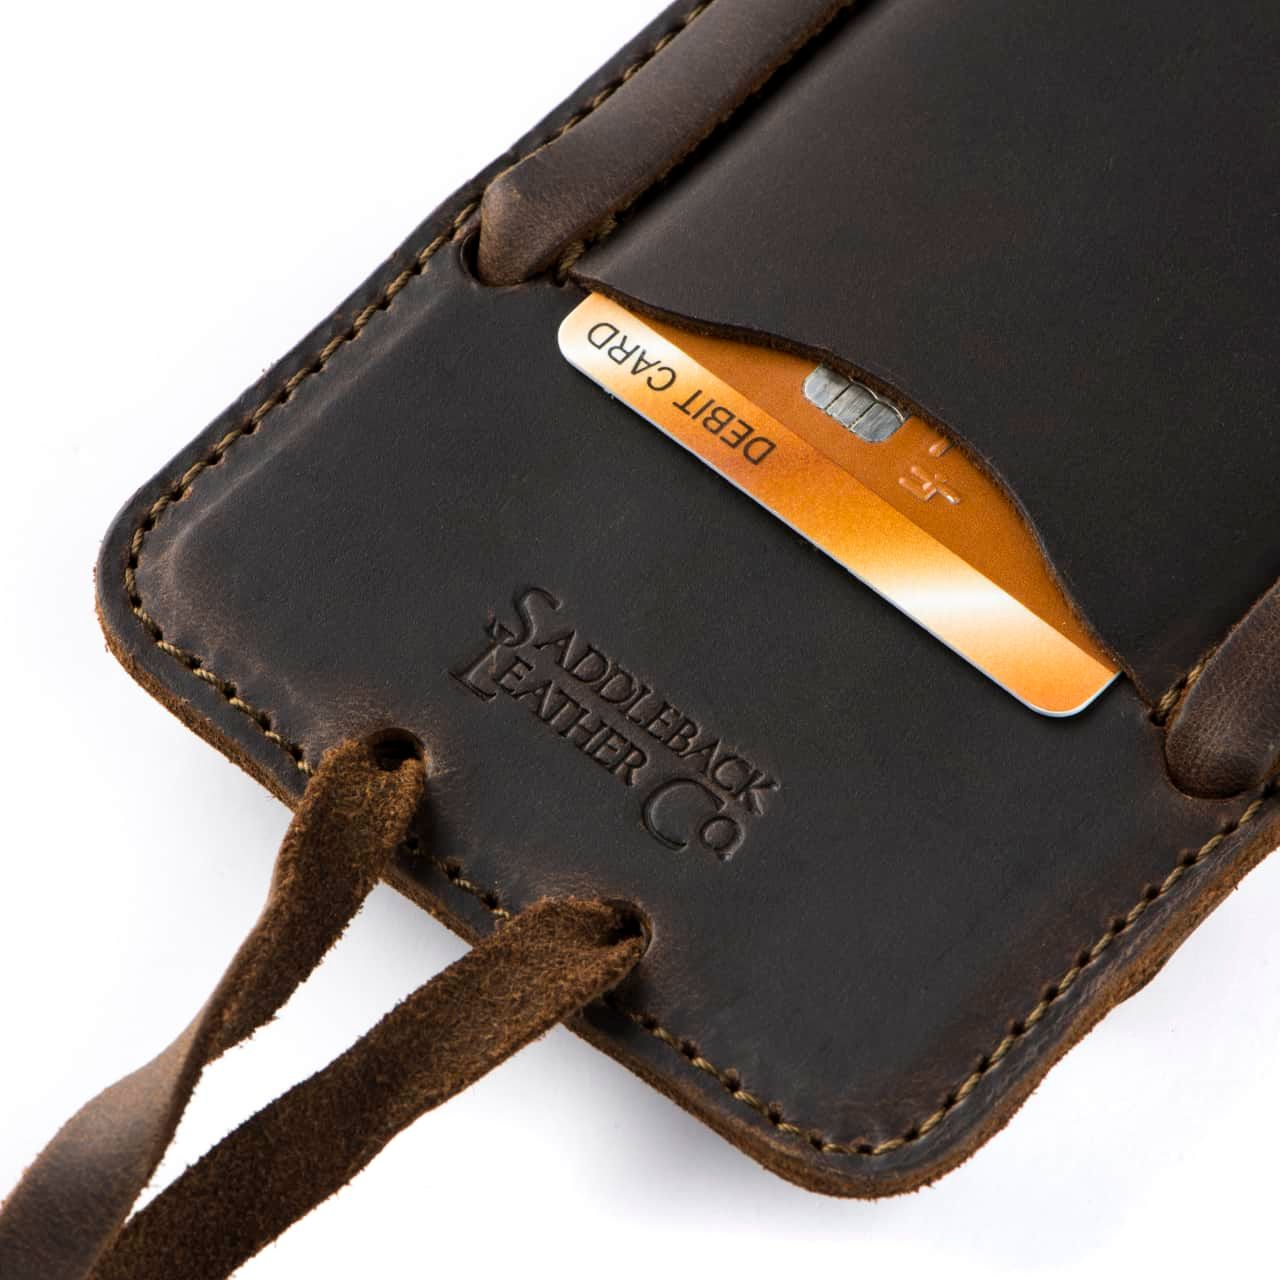 Leather iPhone 8+ Case in Color Dark Coffee Brown Zoomed in on the Saddleback Logo and Card Slot with a Card